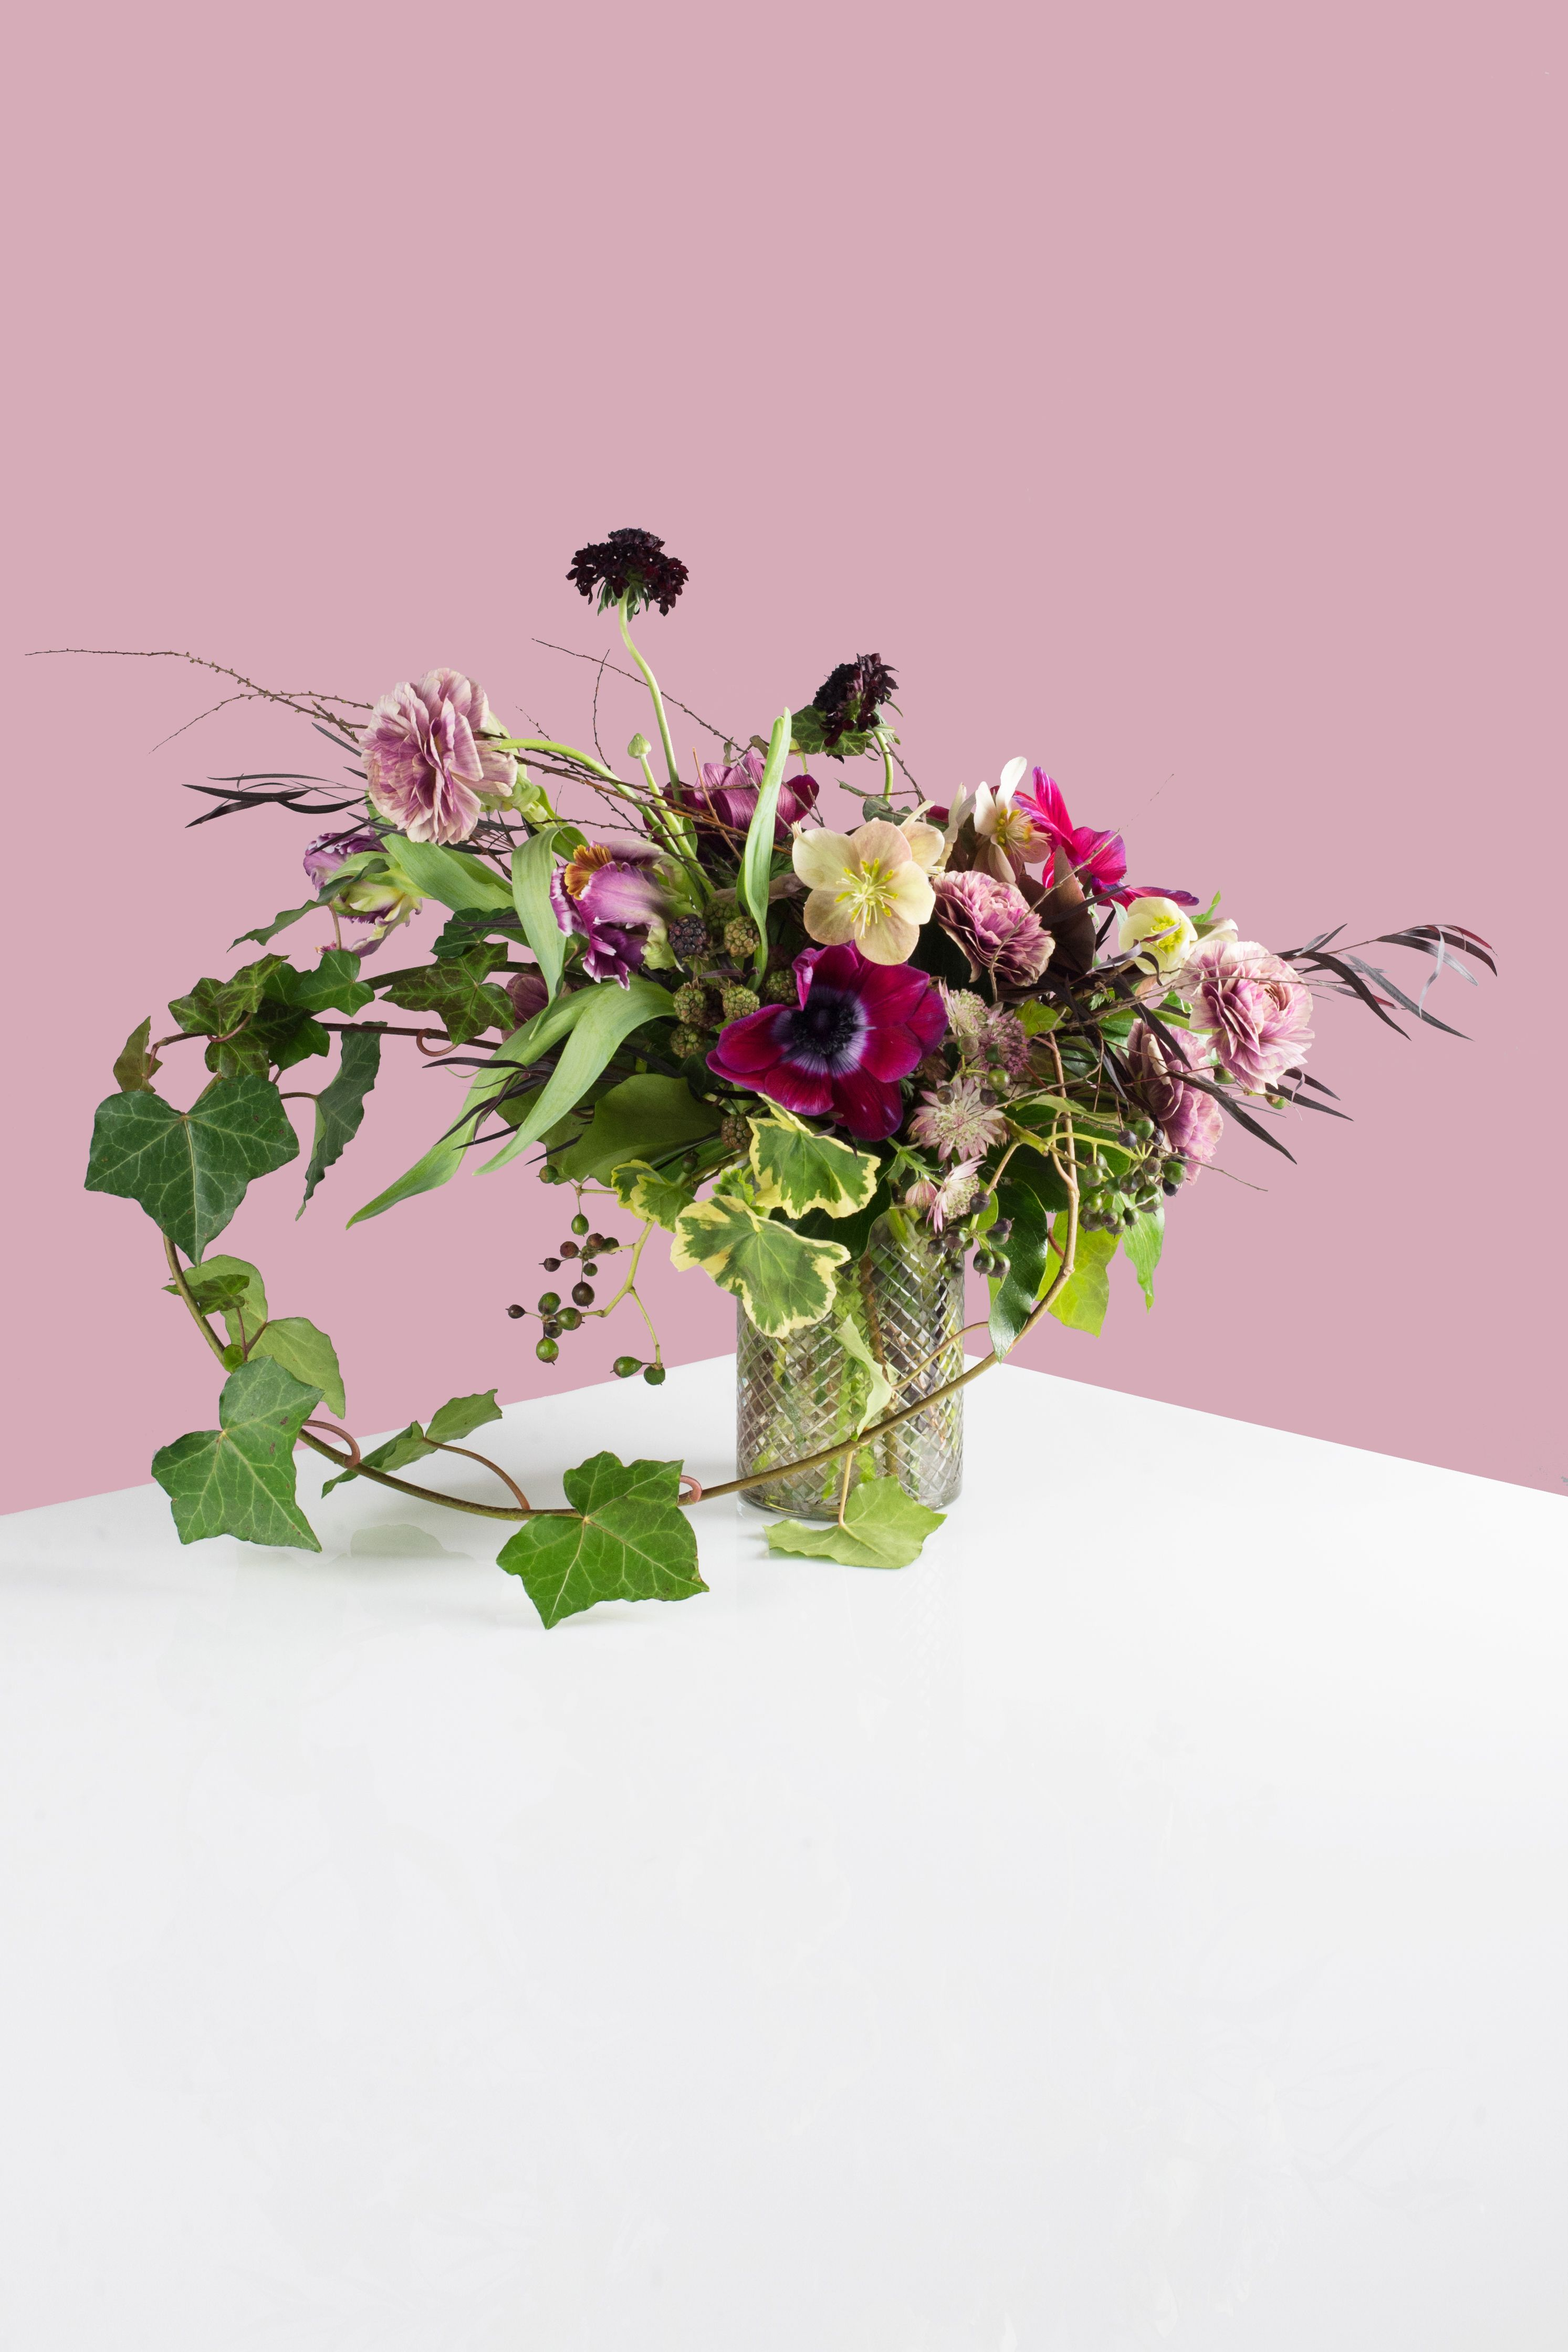 <p>For this girl, you should go for deep plum tones, twisted together. This arrangement is a gathering of the most hauntingly beautiful blooms,a little witchy and wild.</p> <p><em>Materials: Parrot Tulip, Ranunculus, Hellebores, Tetra Anemone, Astrantia, Agonis, Geranium, Spirea, Blackberries, Ivy</em></p> <p><em>Retails at $200.</em></p>